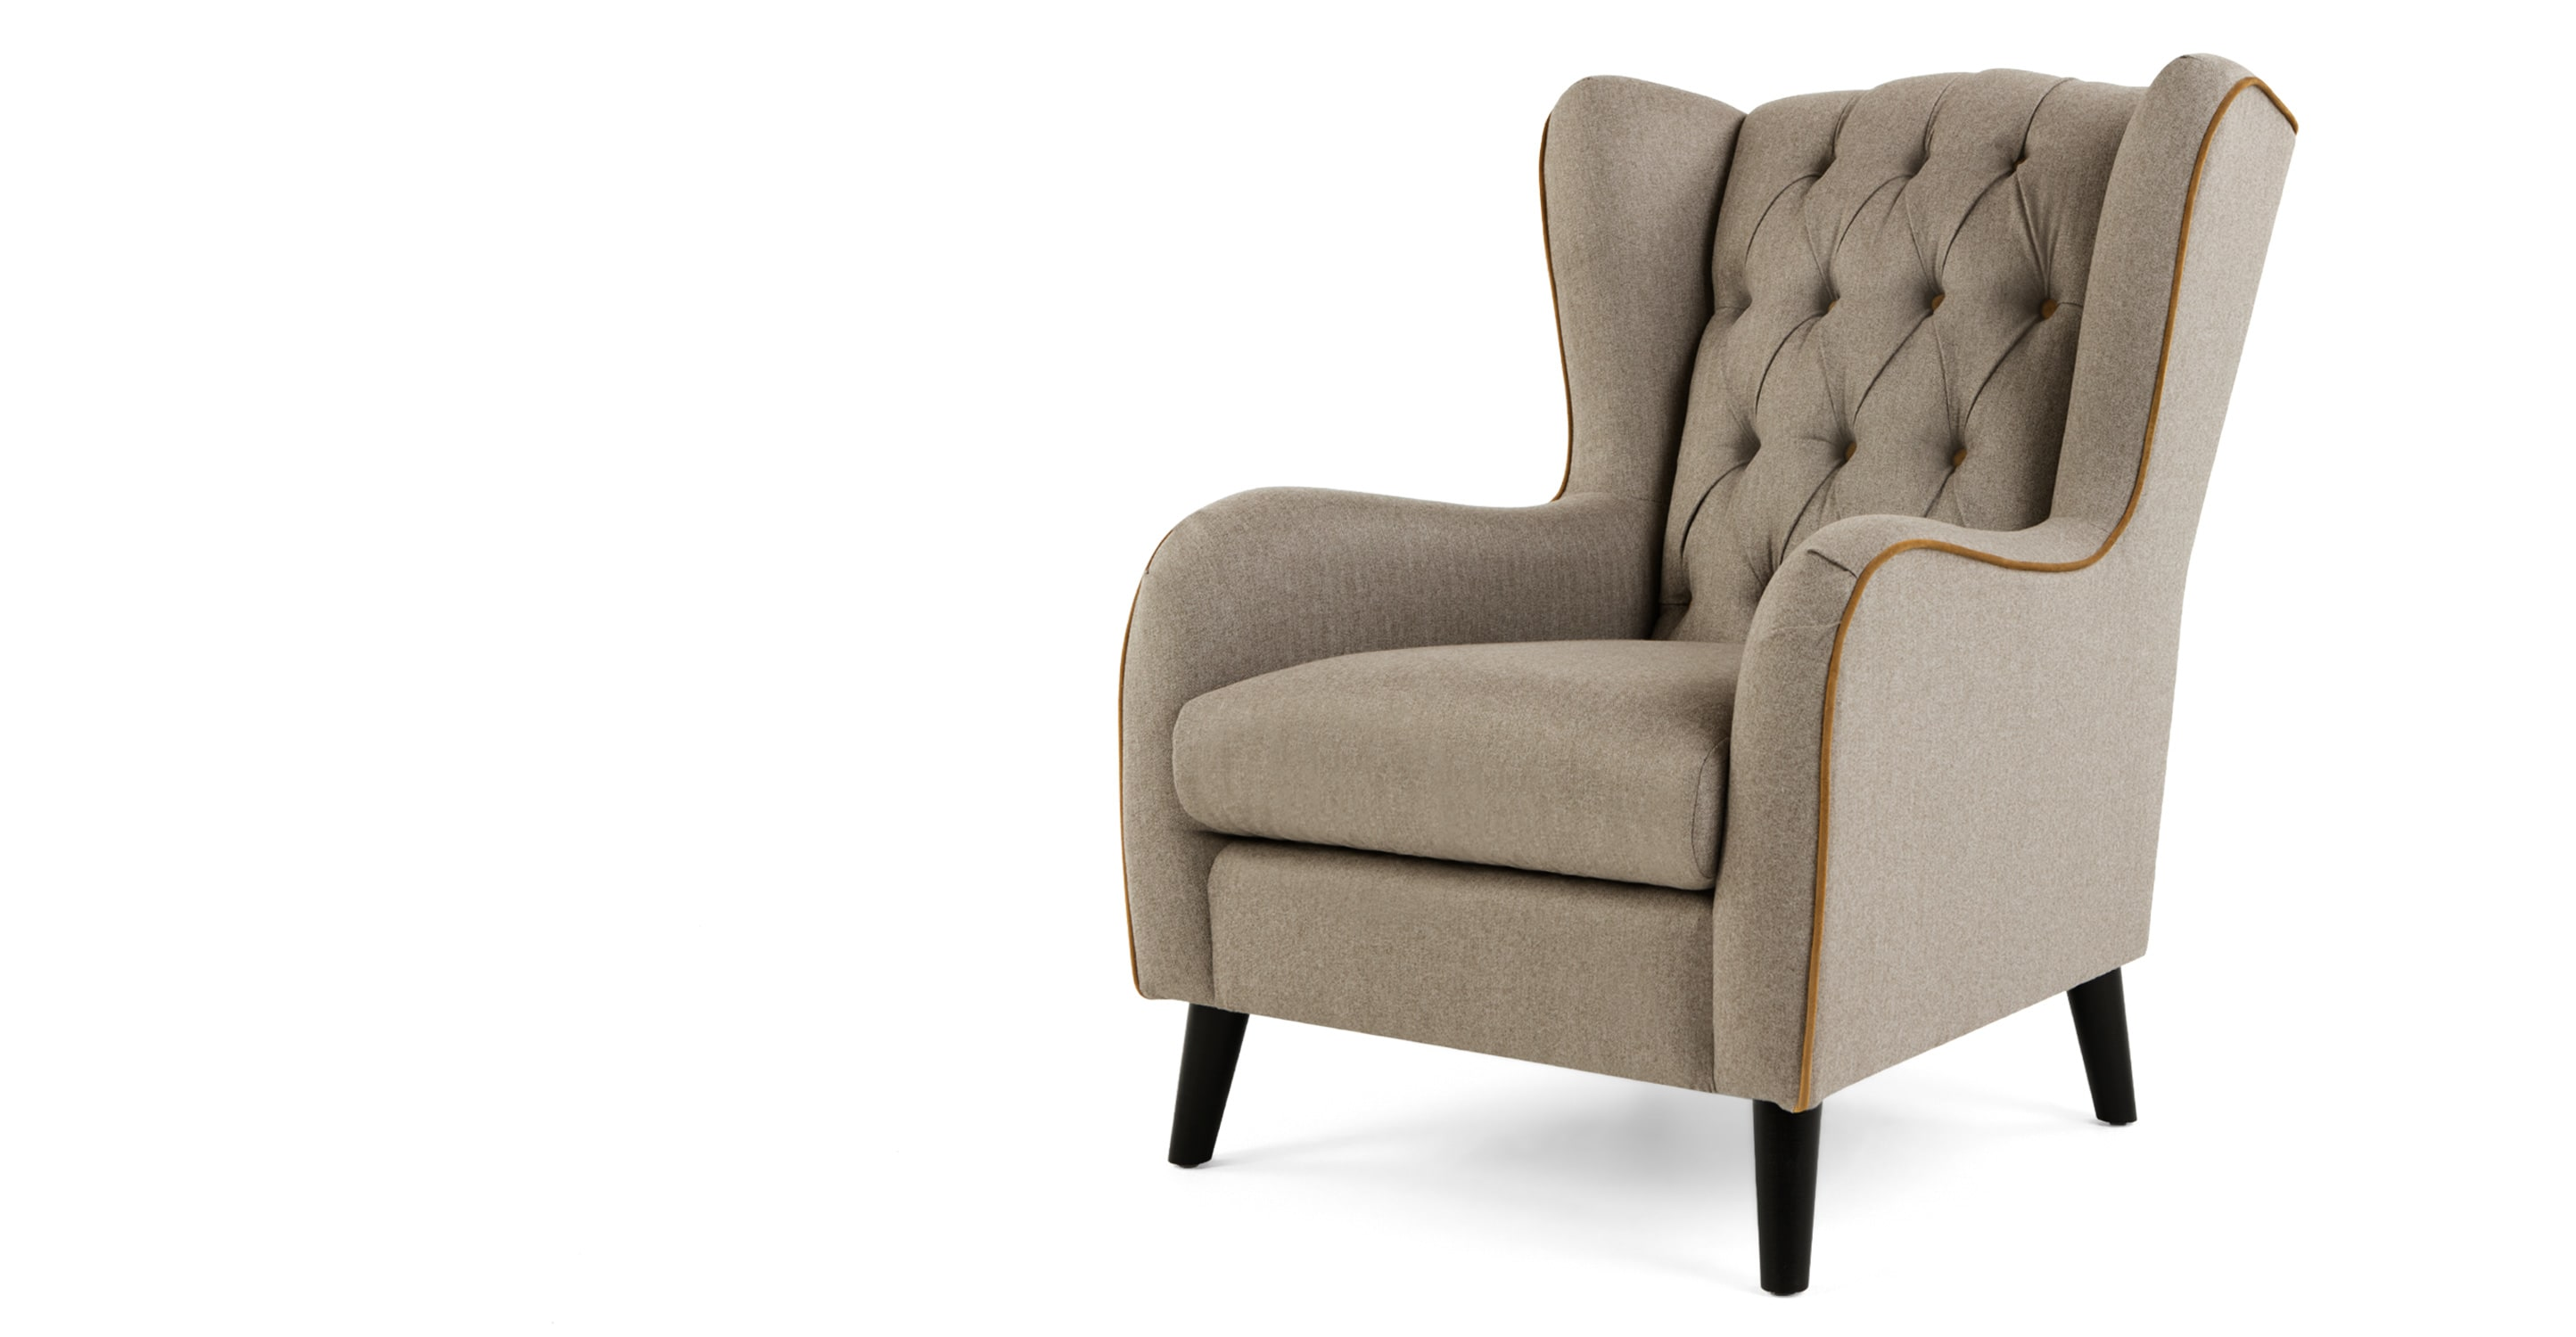 fauteuil bergere gris 19 id es de d coration int rieure french decor. Black Bedroom Furniture Sets. Home Design Ideas